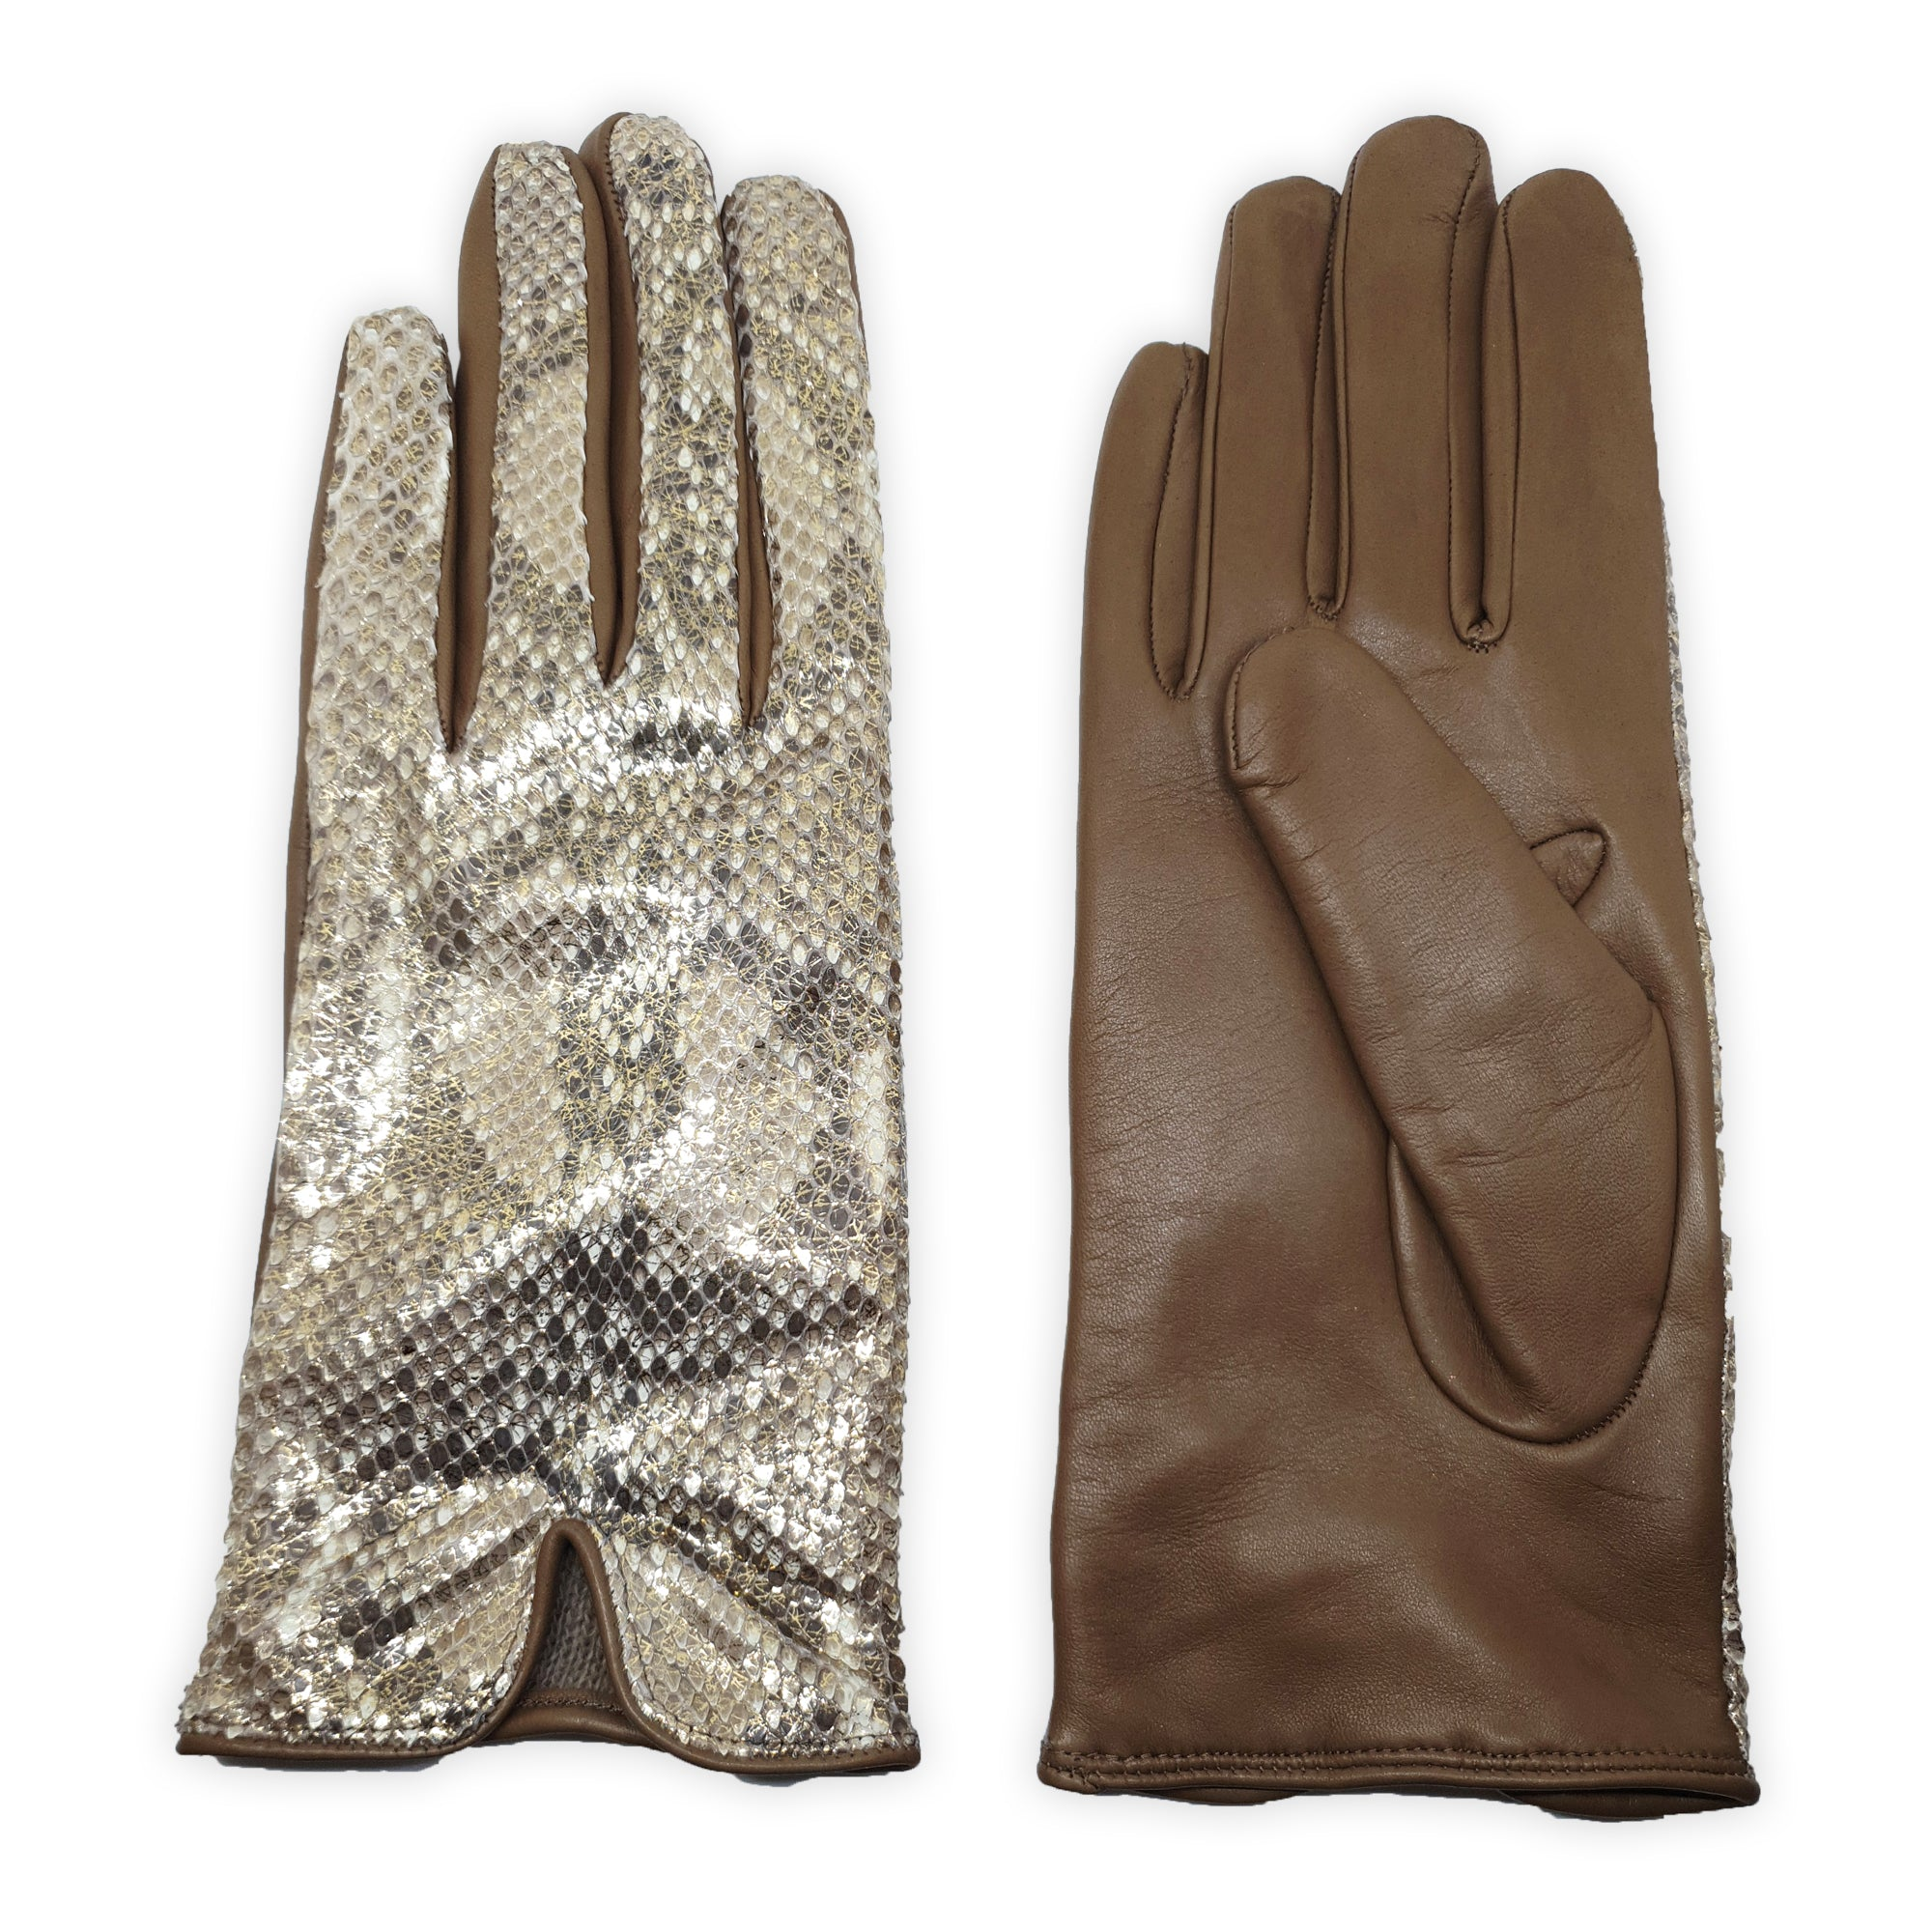 Genuine leather gloves lined in 100% cashmere, python back, Monza model